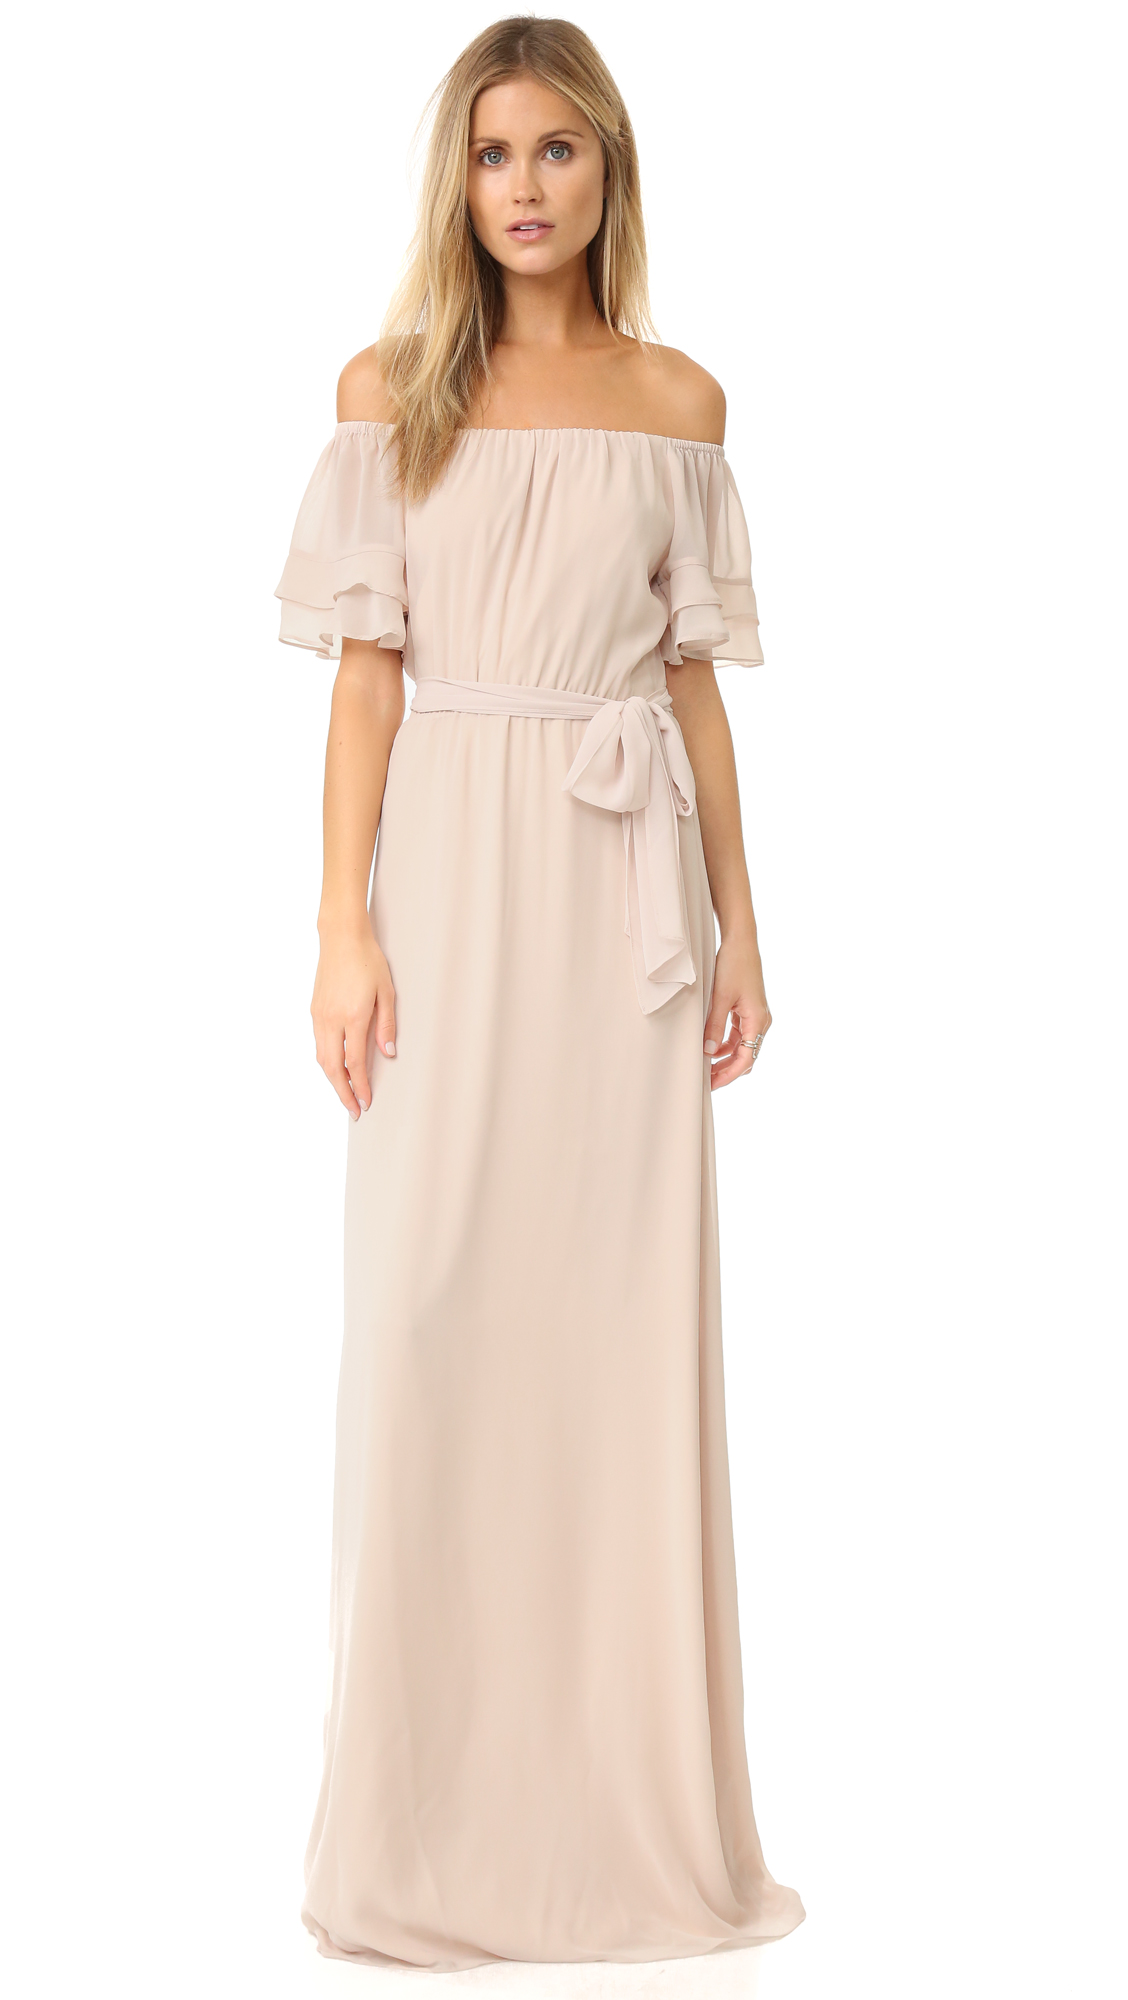 Joanna August Maggie Long Dress - All TomorrowS Parties